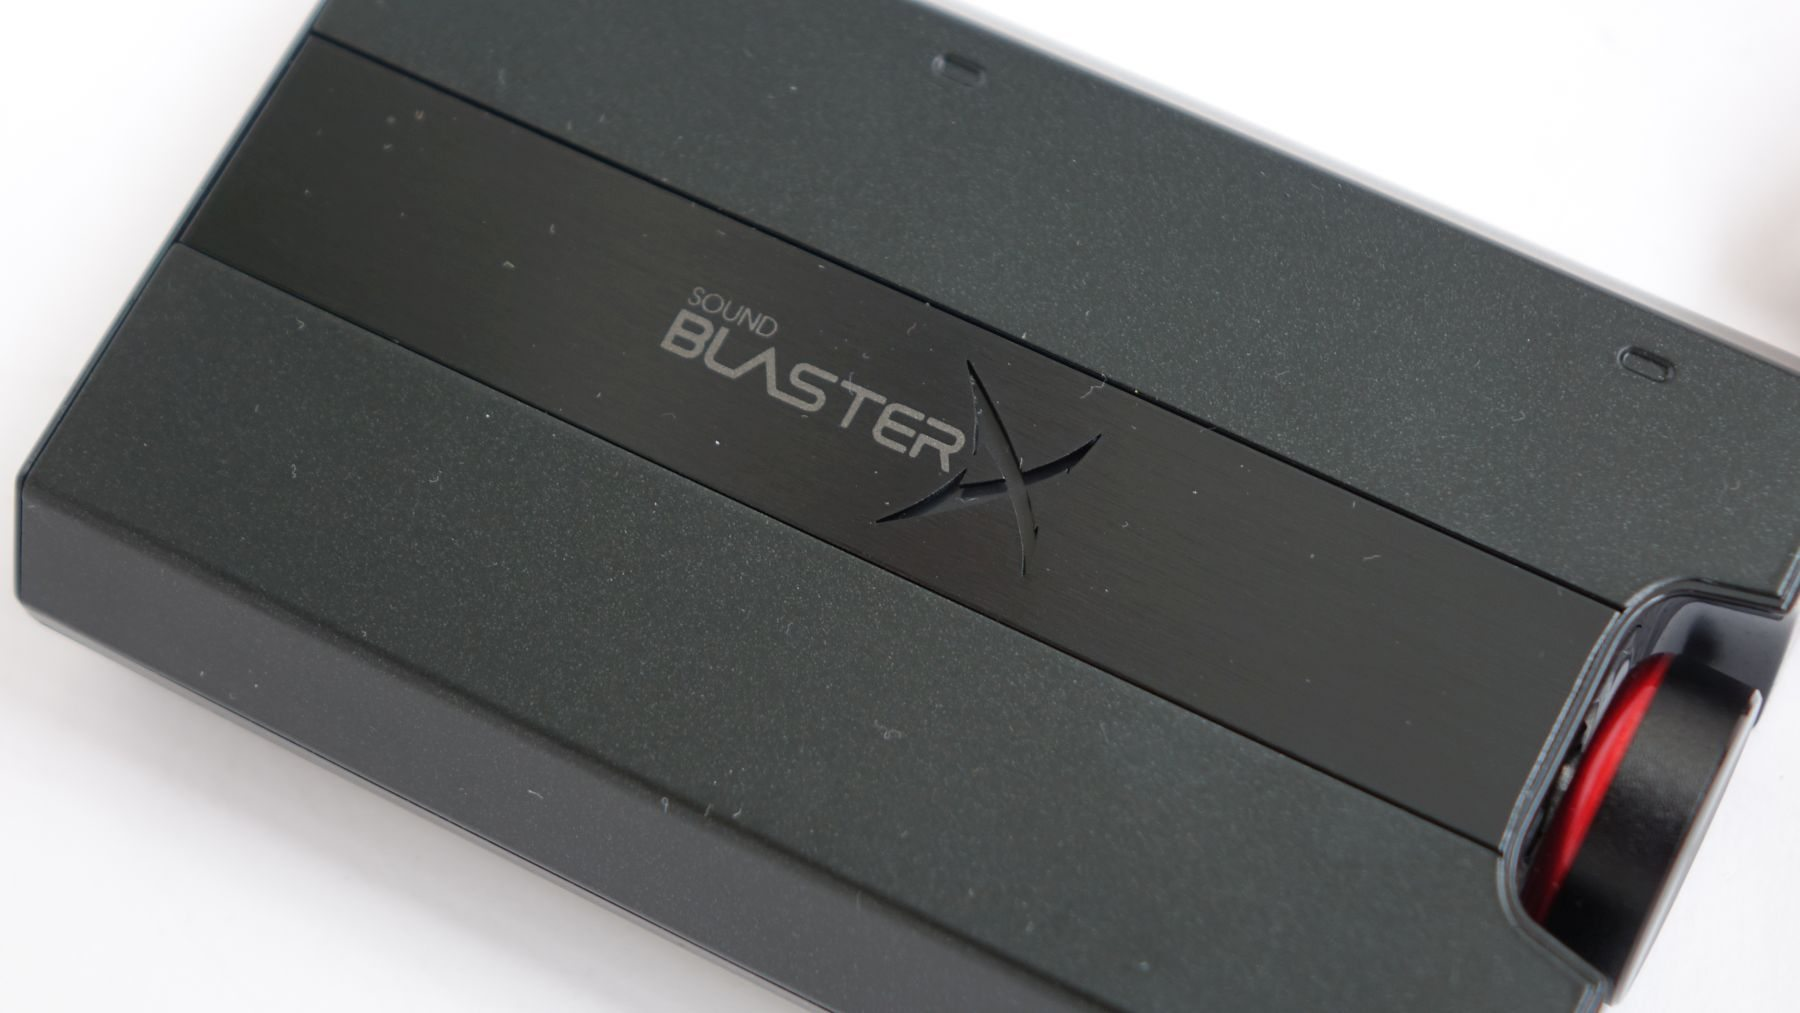 Creative Sound BlasterX G5 main